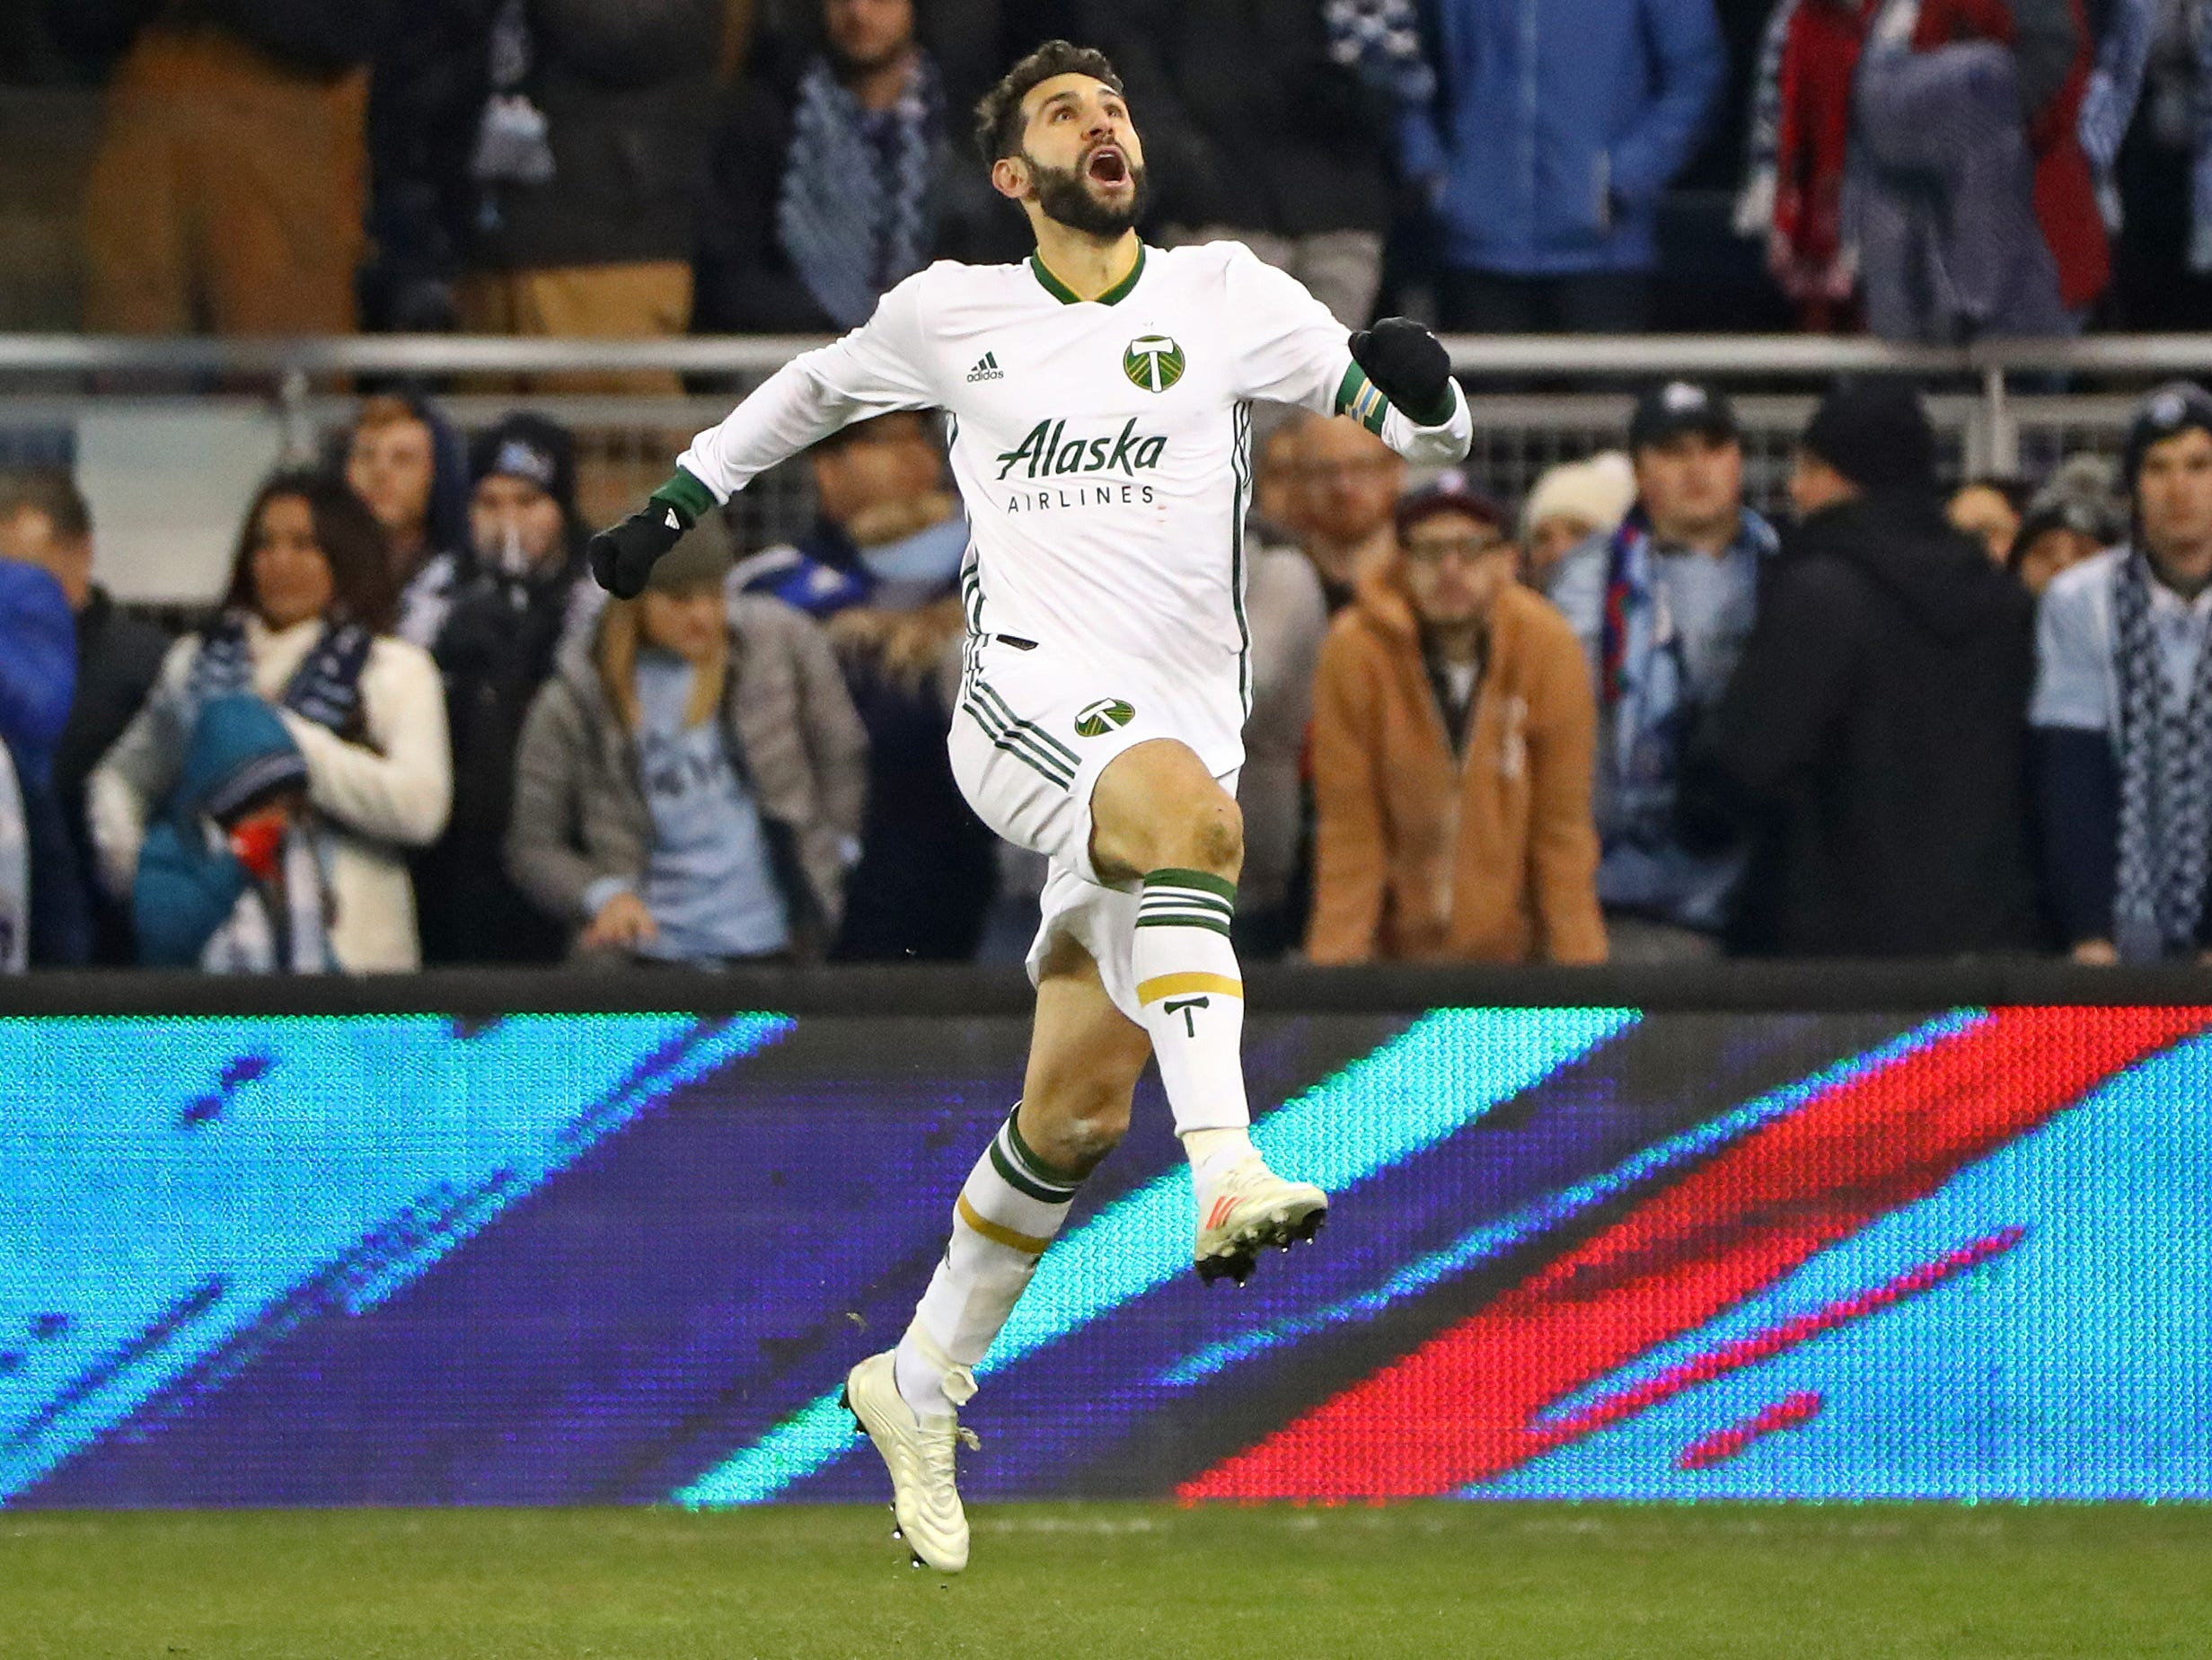 Portland Timbers midfielder Diego Valeri celebrates after scoring a goal against Sporting Kansas City during the second half in the second leg of the MLS Western Conference Championship at Children's Mercy Park.